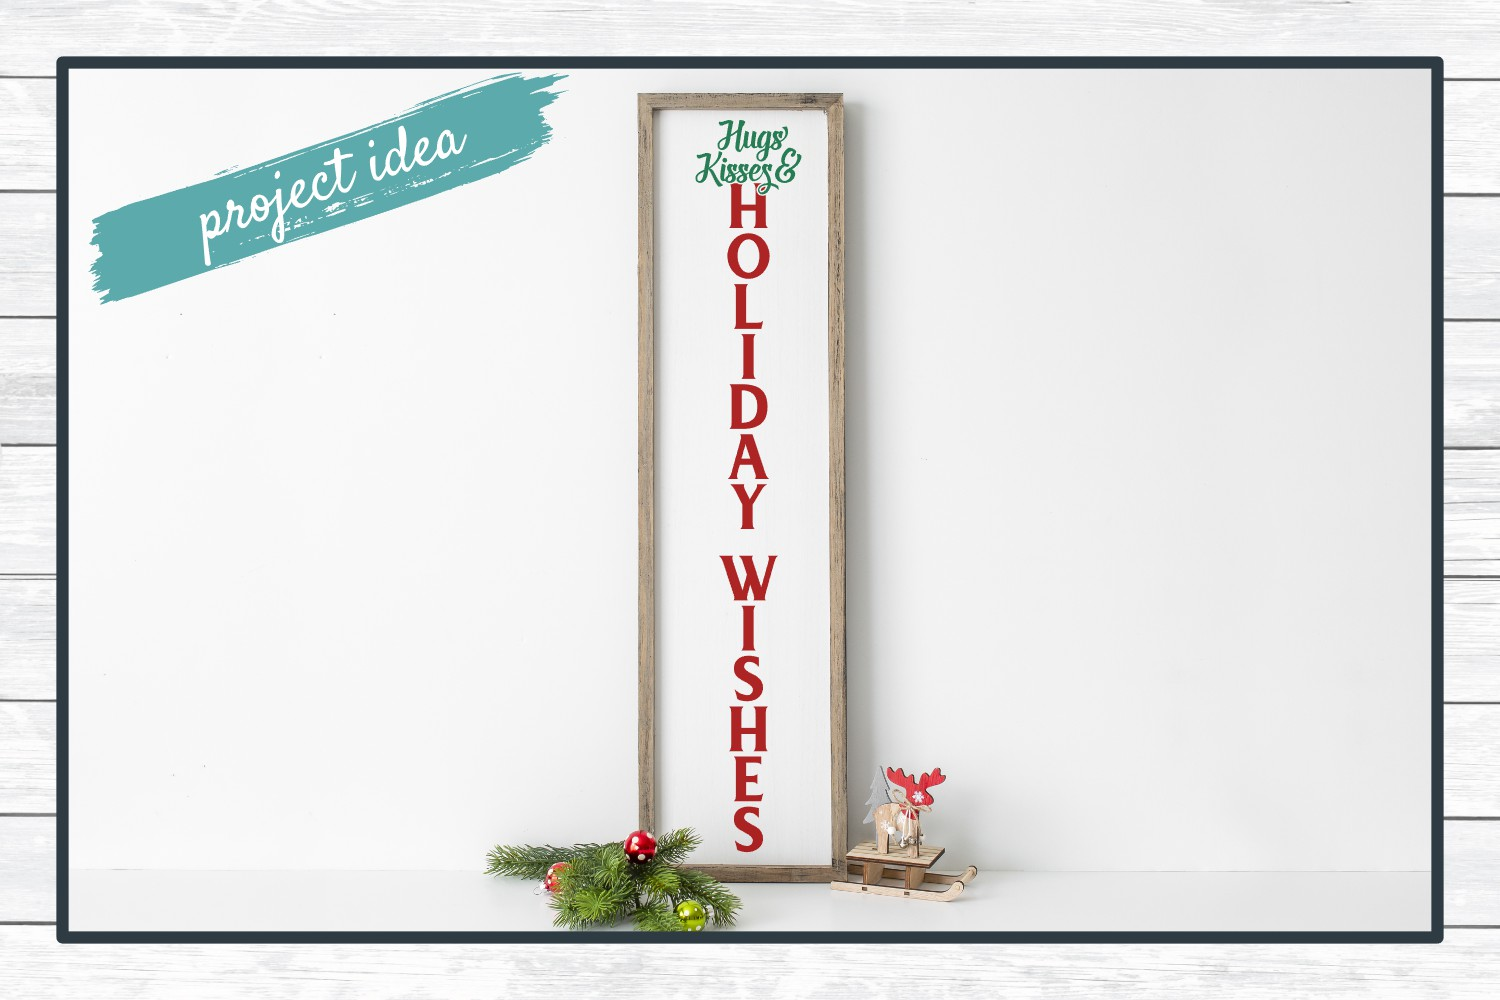 Hugs Kisses & Holiday Wishes Porch Sign Design example image 2